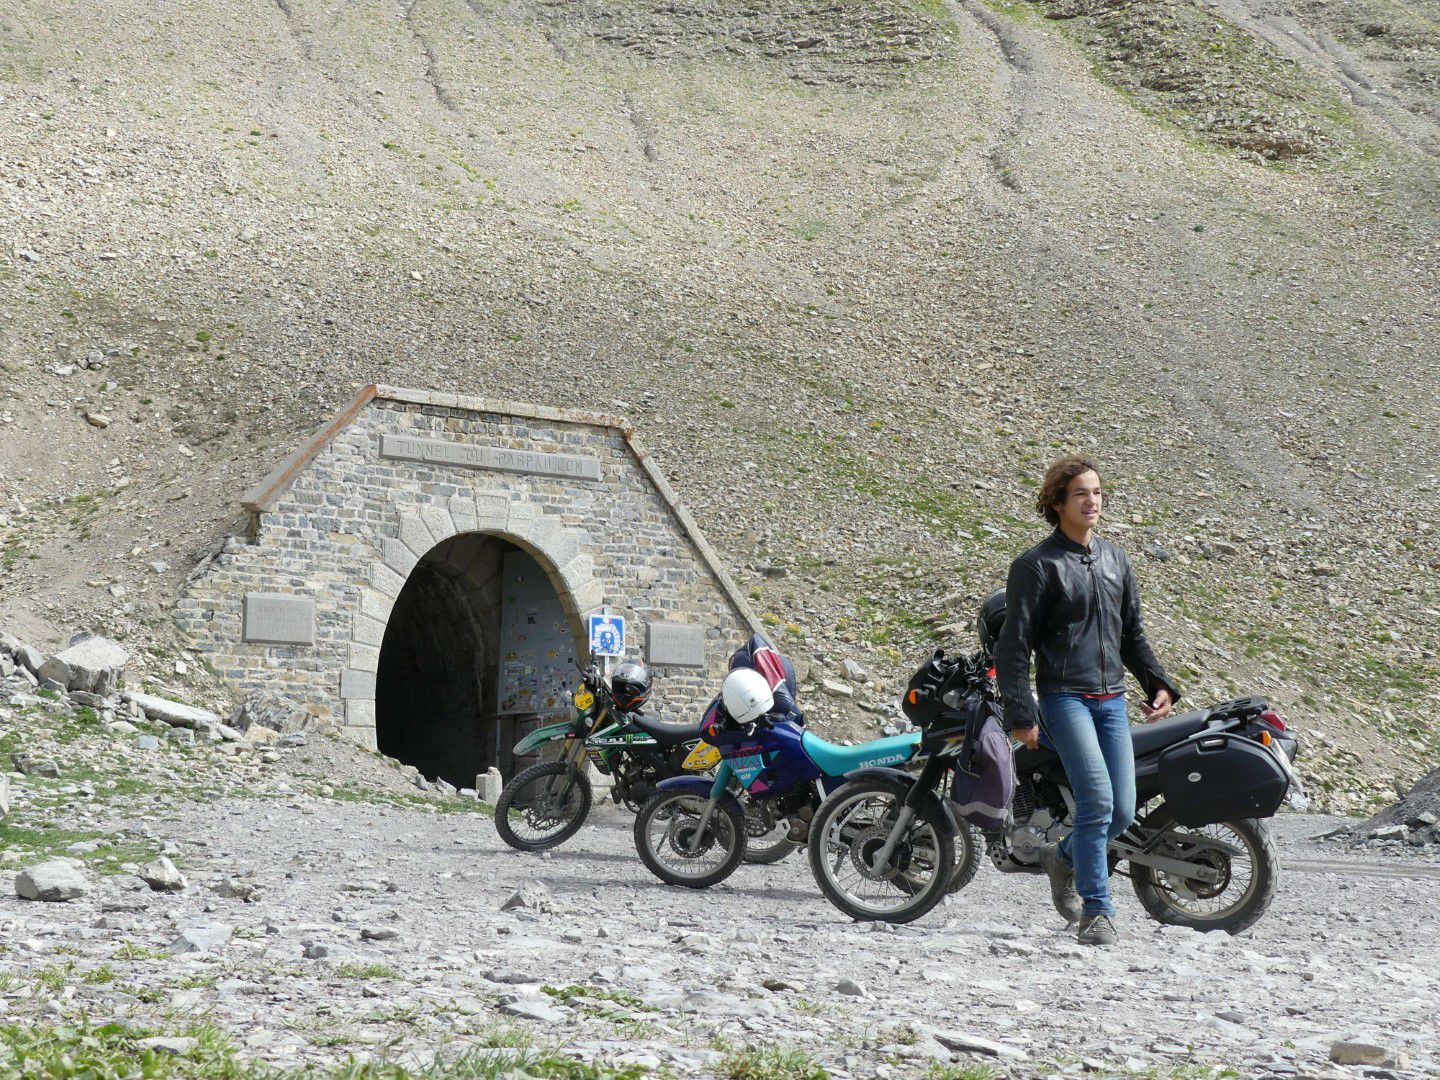 Montée du col/tunnel du Parpaillon, Hautes-Alpes, France